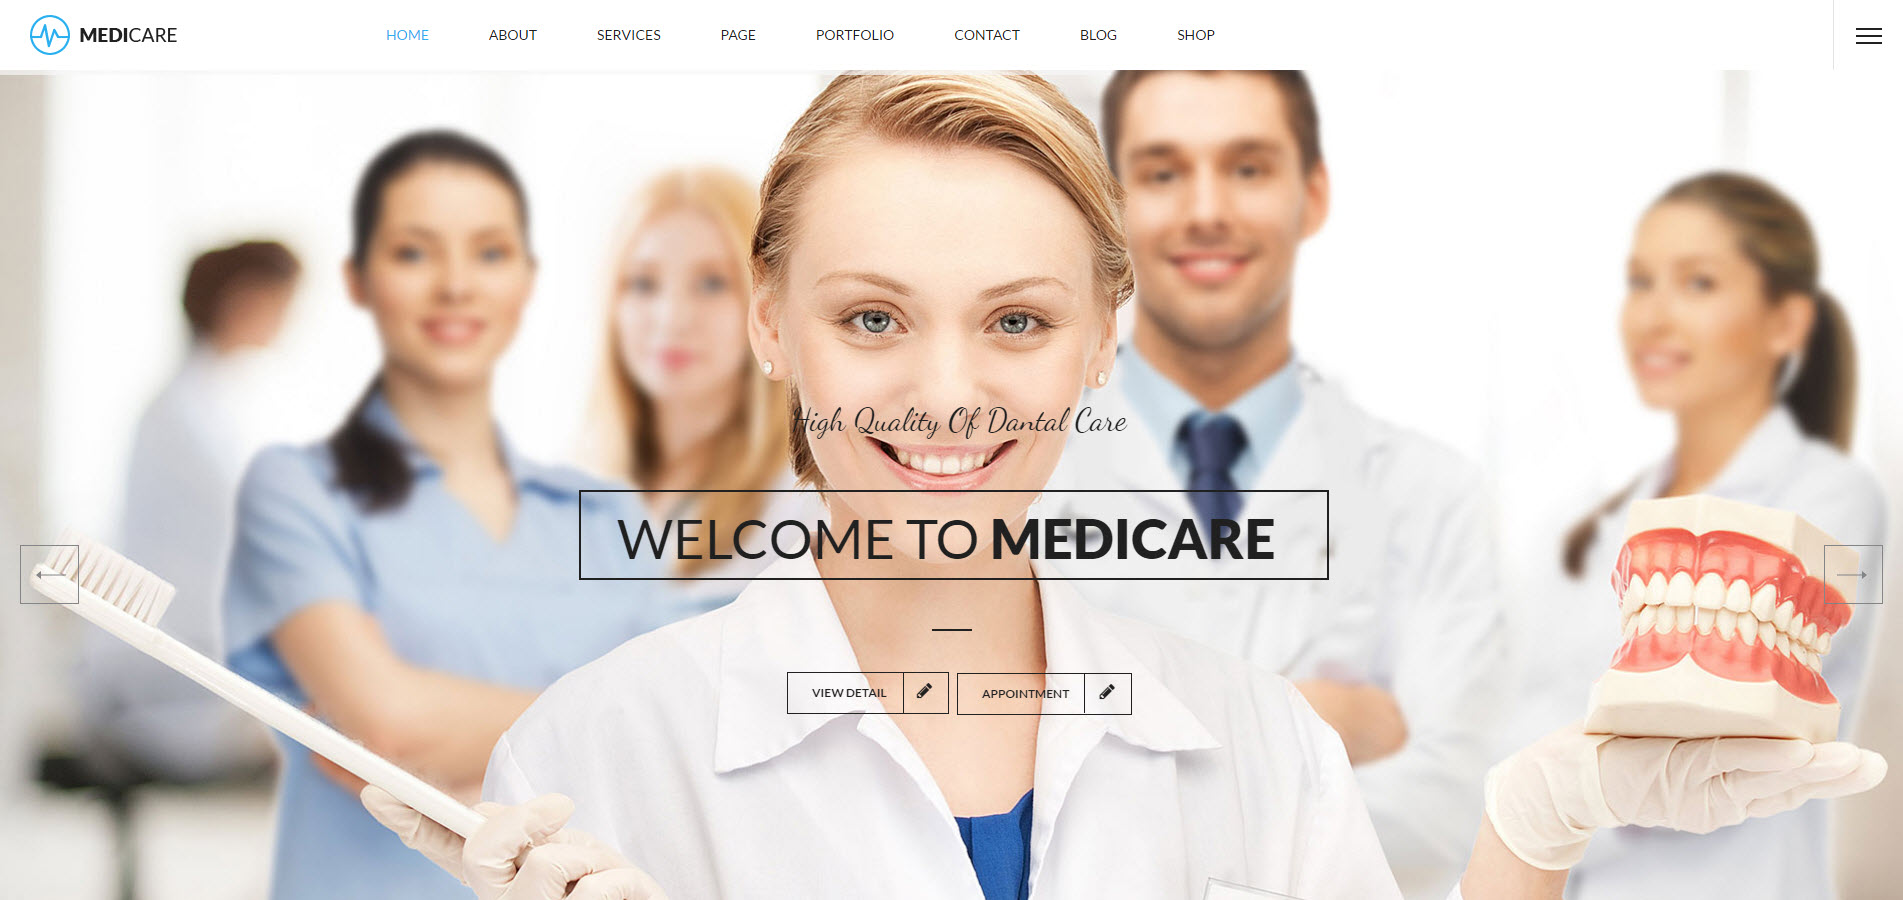 medicare wordpress theme - heath wordpress theme - theme for medical - theme for dentist